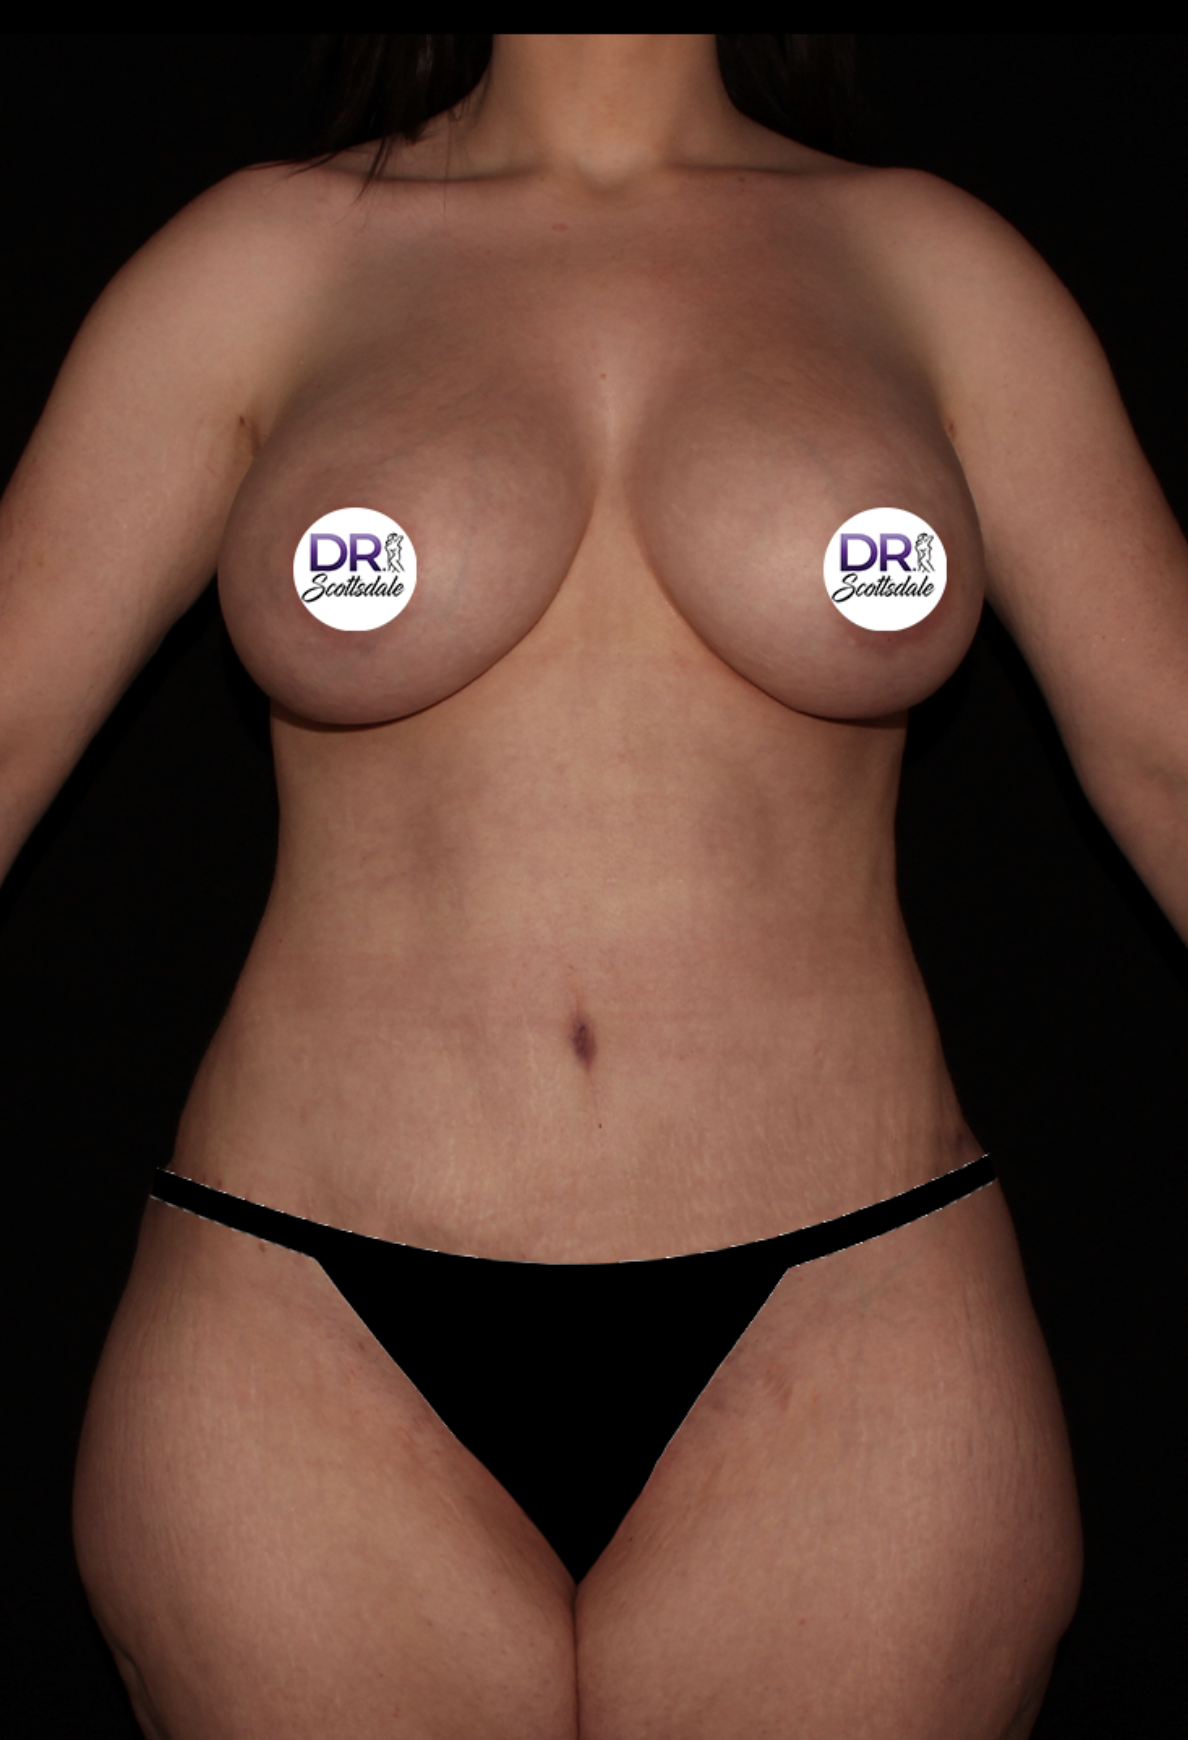 After Tummy Tuck - Tummy Tuck with breast augmentation